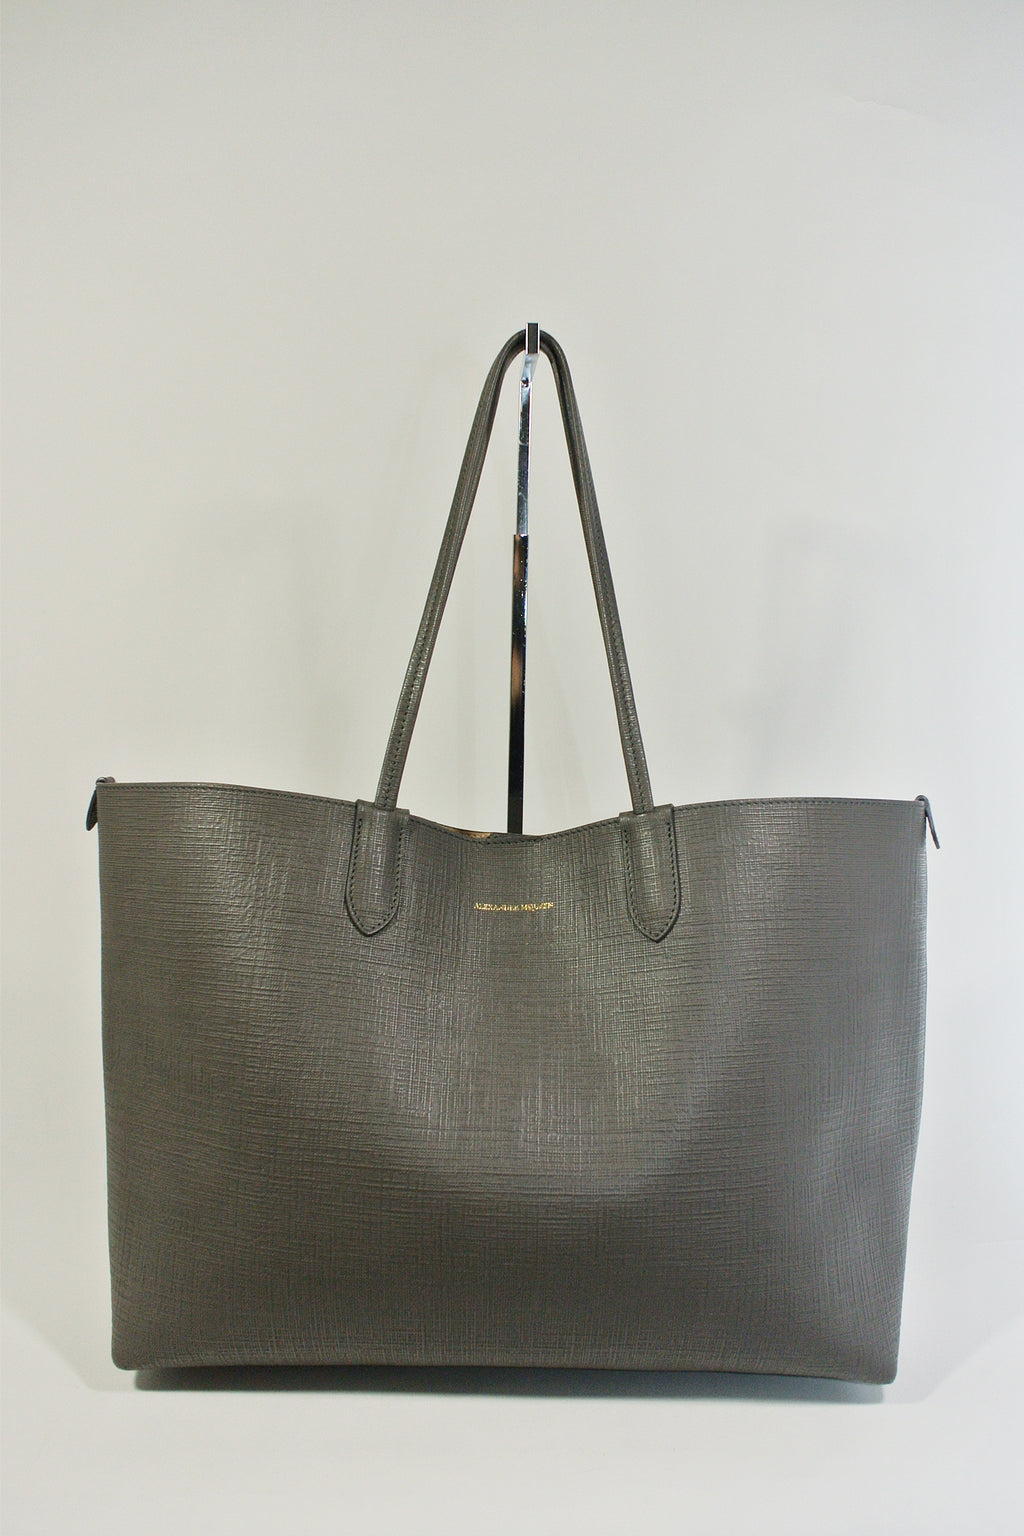 Alexander McQueen Grey Leather Tote